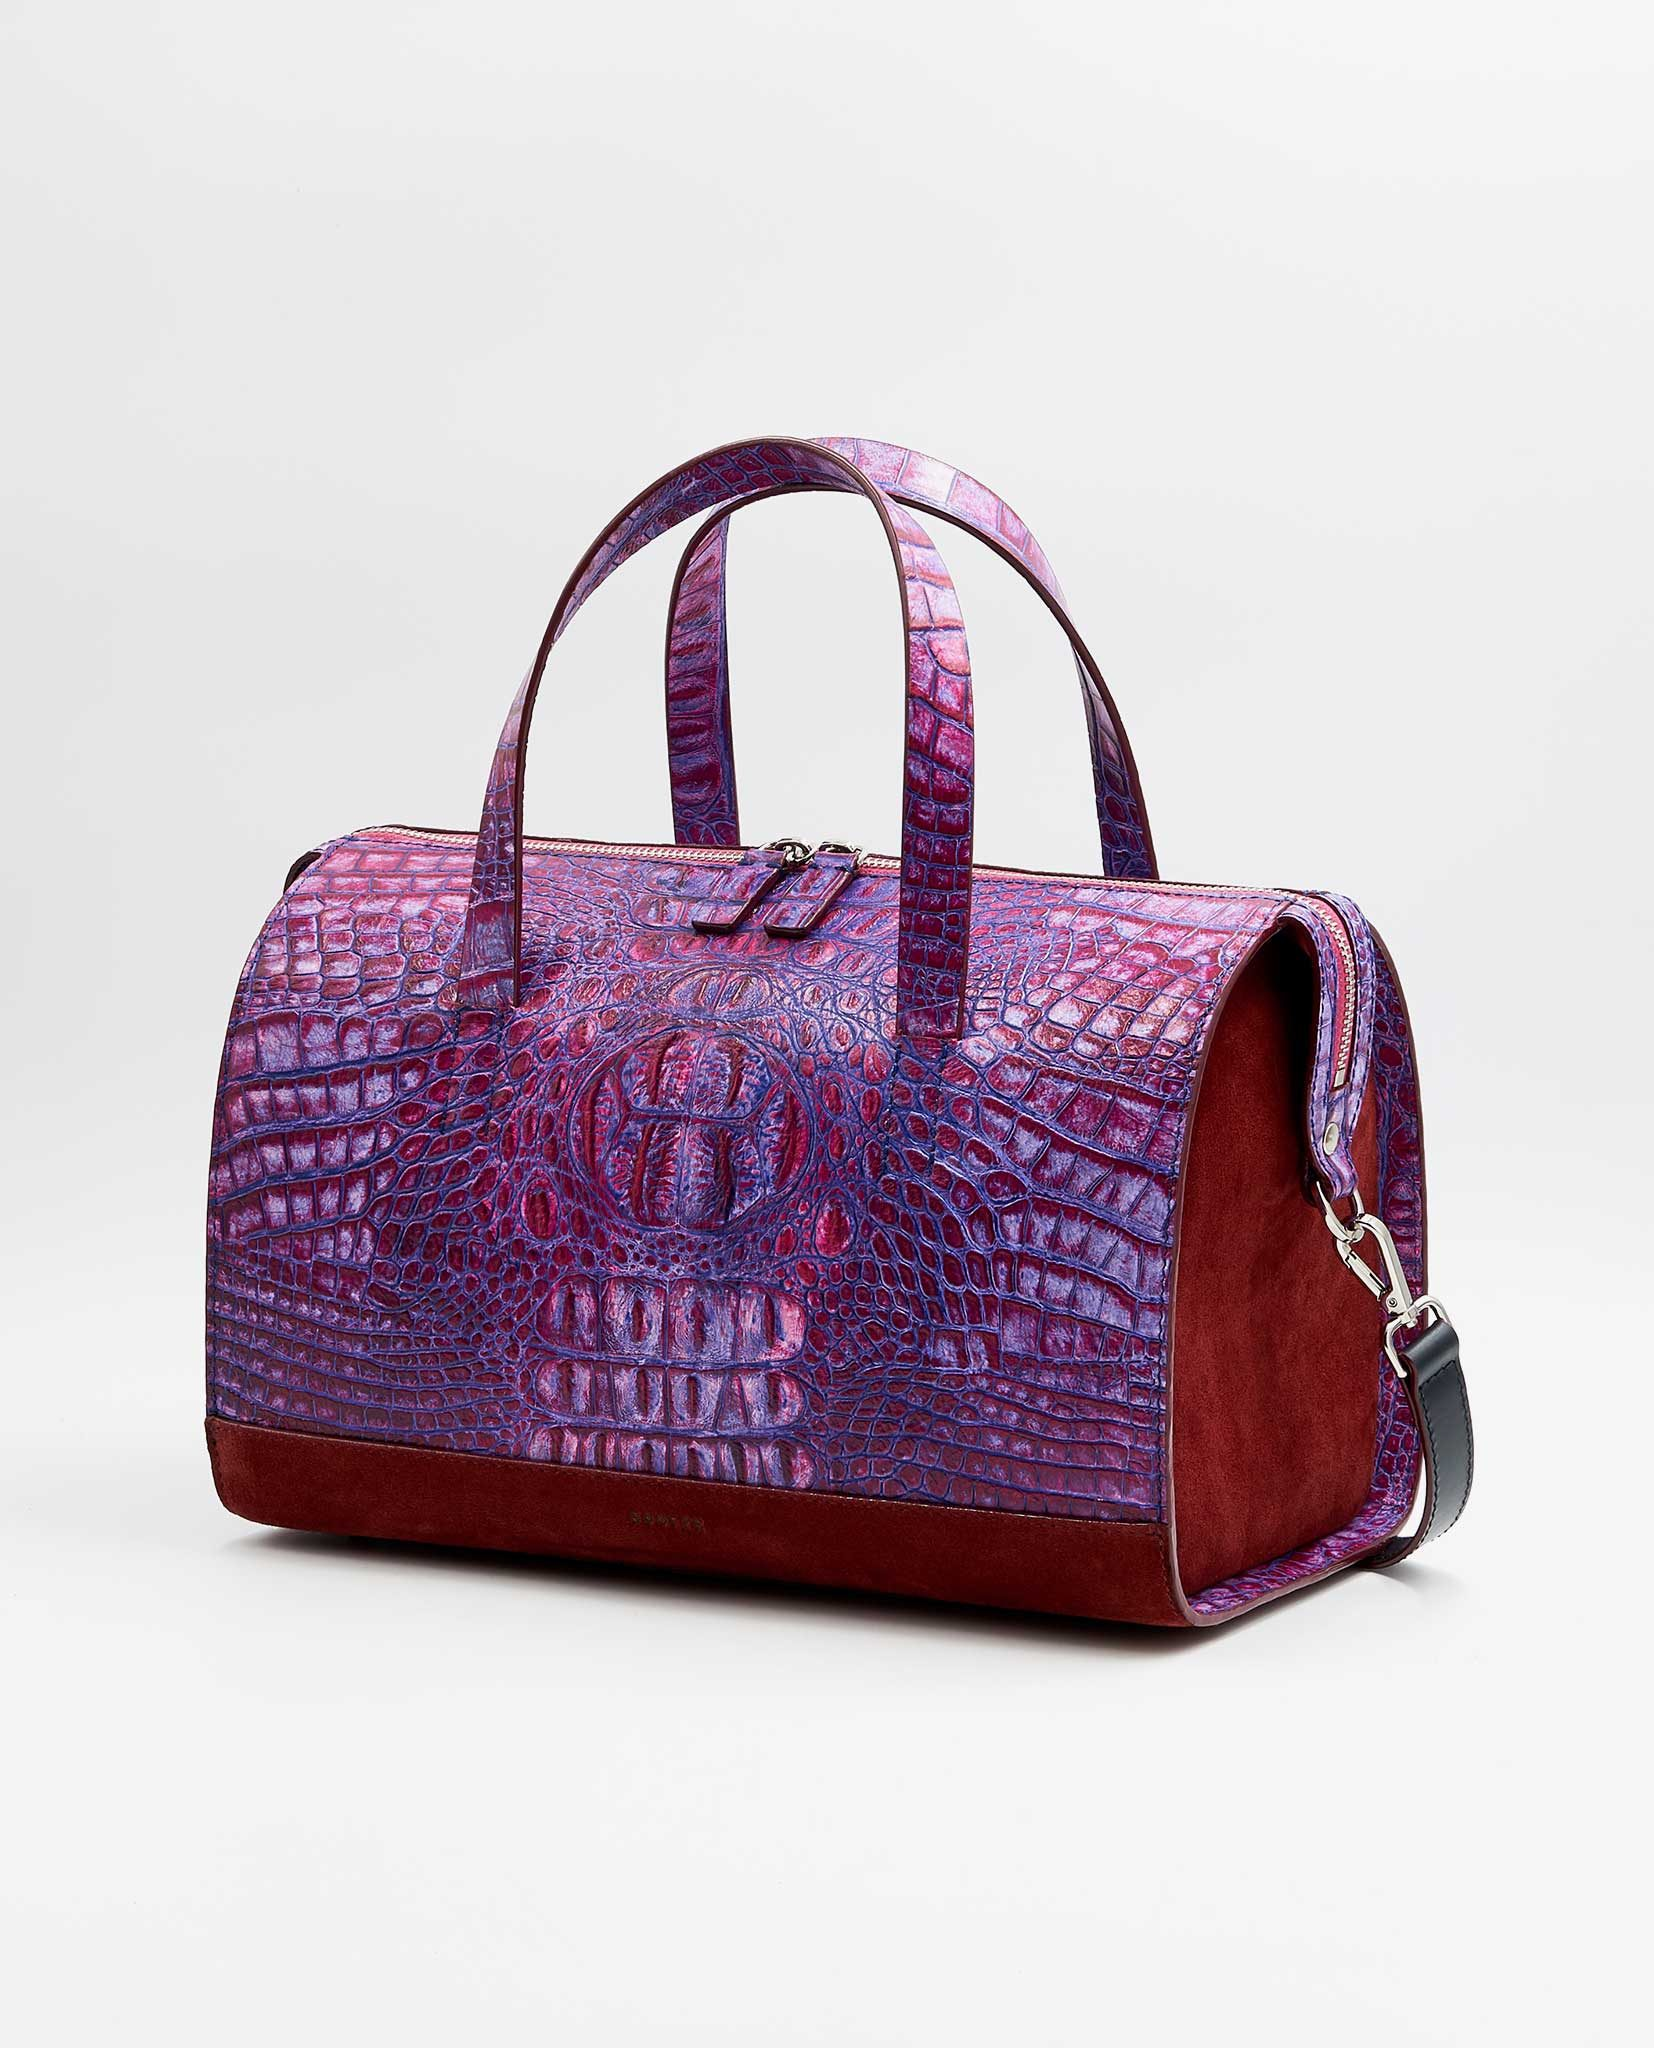 SOOFRE Berlin unique Bowler Bag croco purple lilac / burgundy